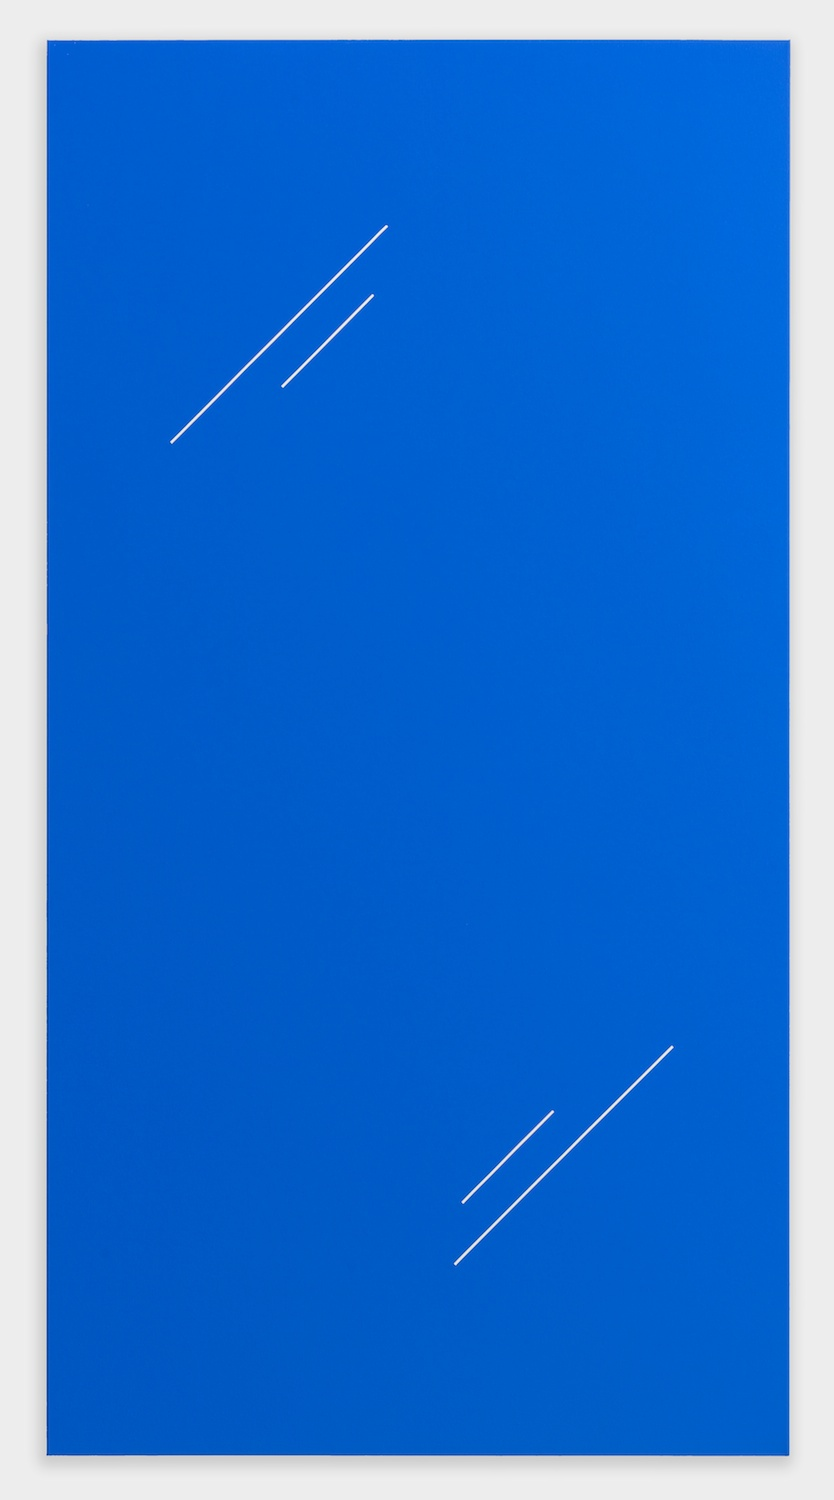 Paul Cowan  BCEAUSE THE SKY IS BULE  2013 Chroma-key Blue Paint On Canvas 78h x 41w in PC080